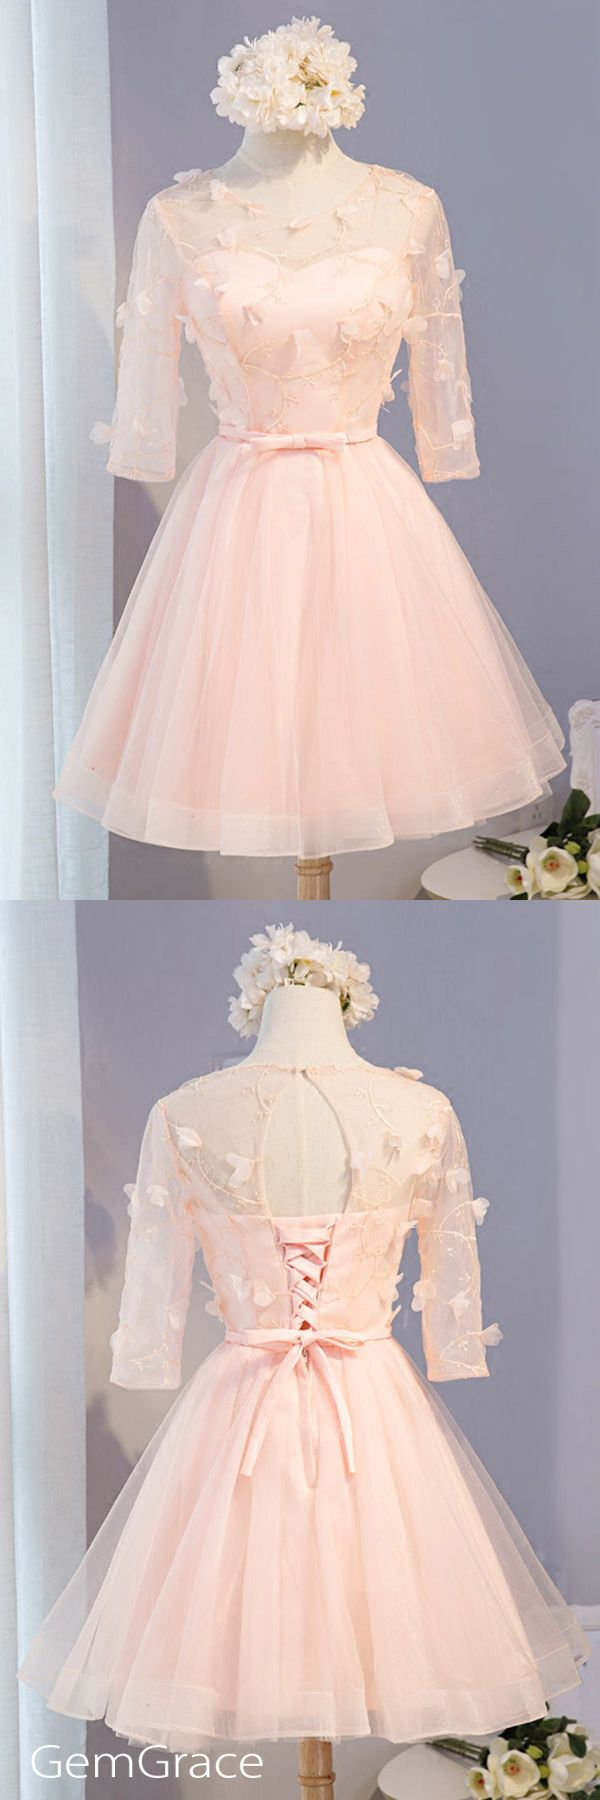 pink tulle style dress for homecoming